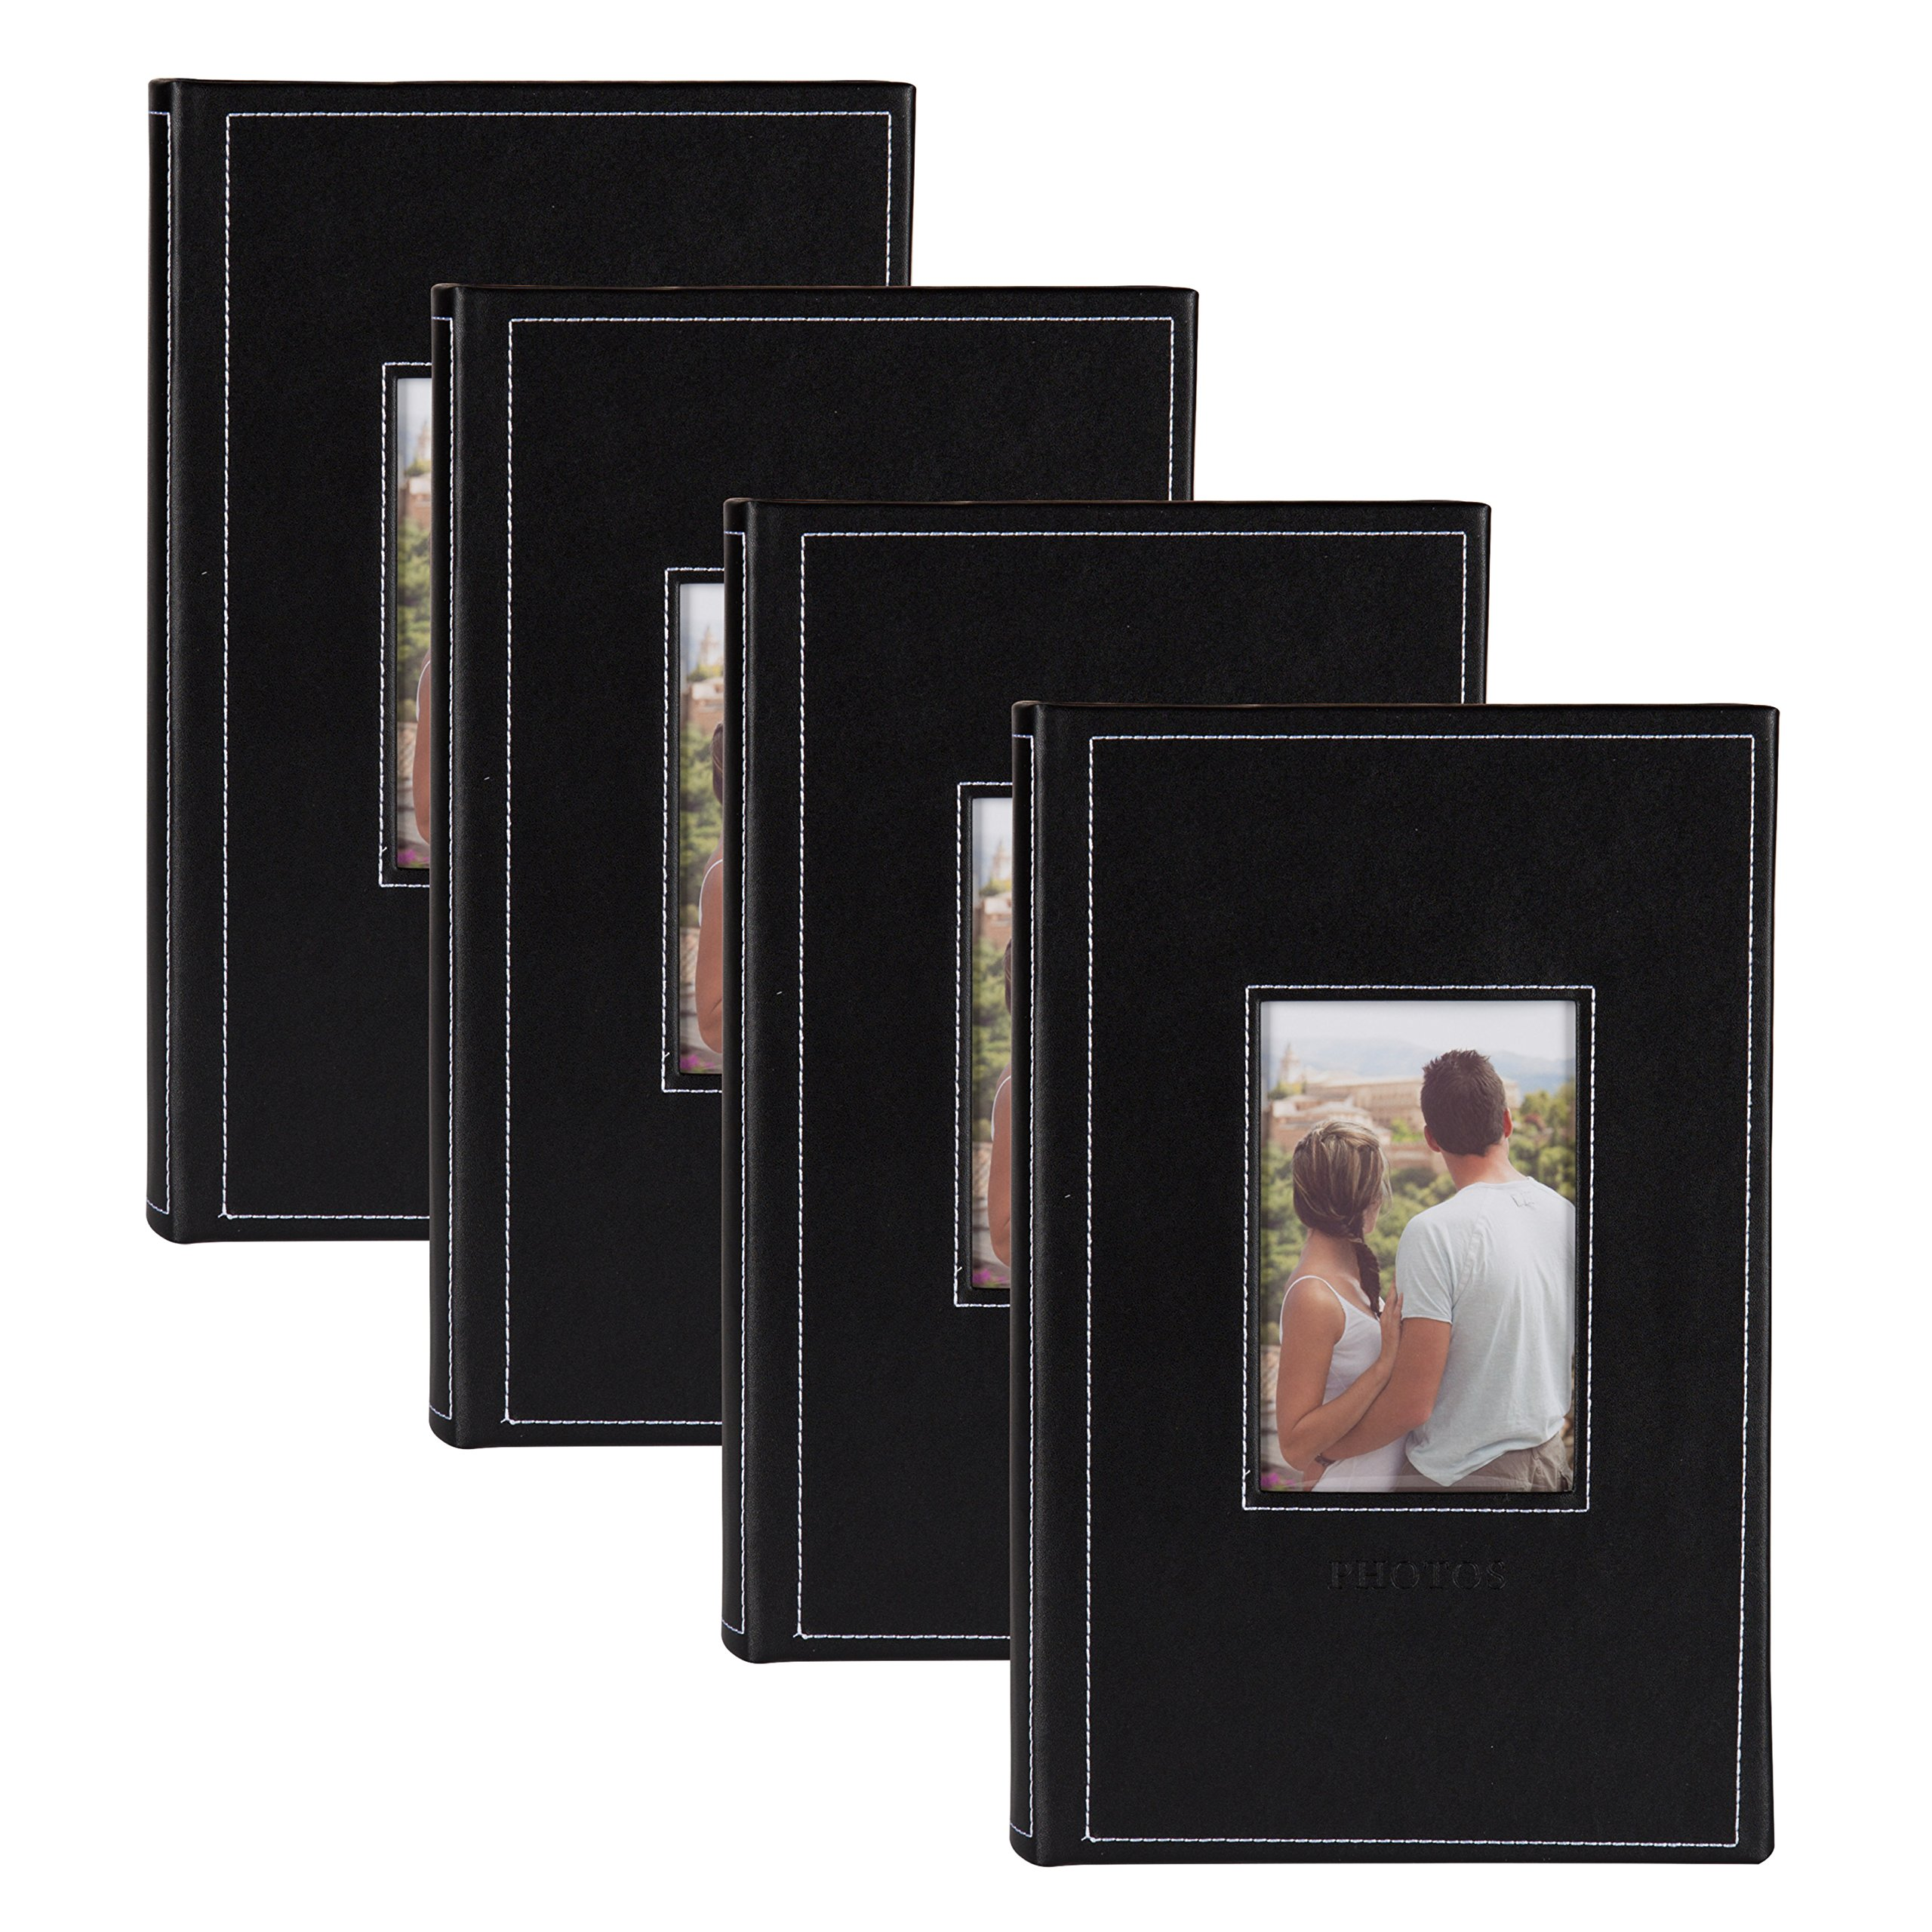 DesignOvation Debossed Black Faux Leather Photo Album, Holds 300 4x6 Photos, Set of 4 by DesignOvation